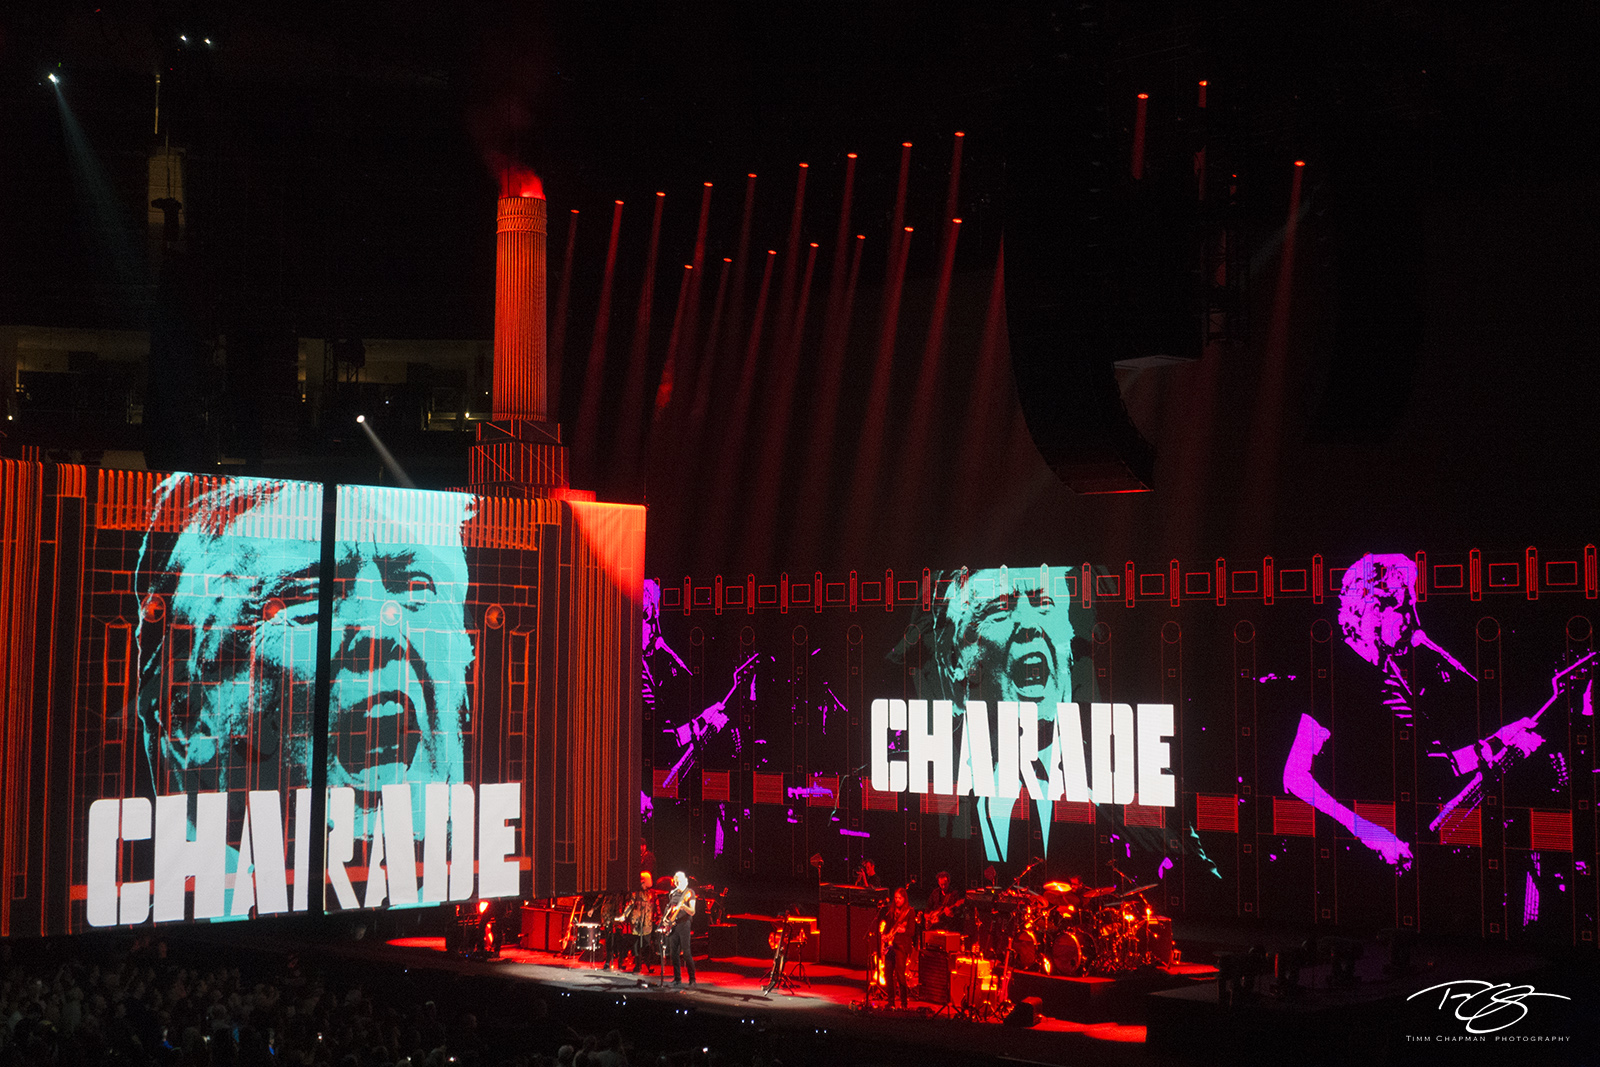 roger waters, pink floyd, in concert, performing, us + them, us and them, pigs, three different ones, president trump, charade, trump, photo